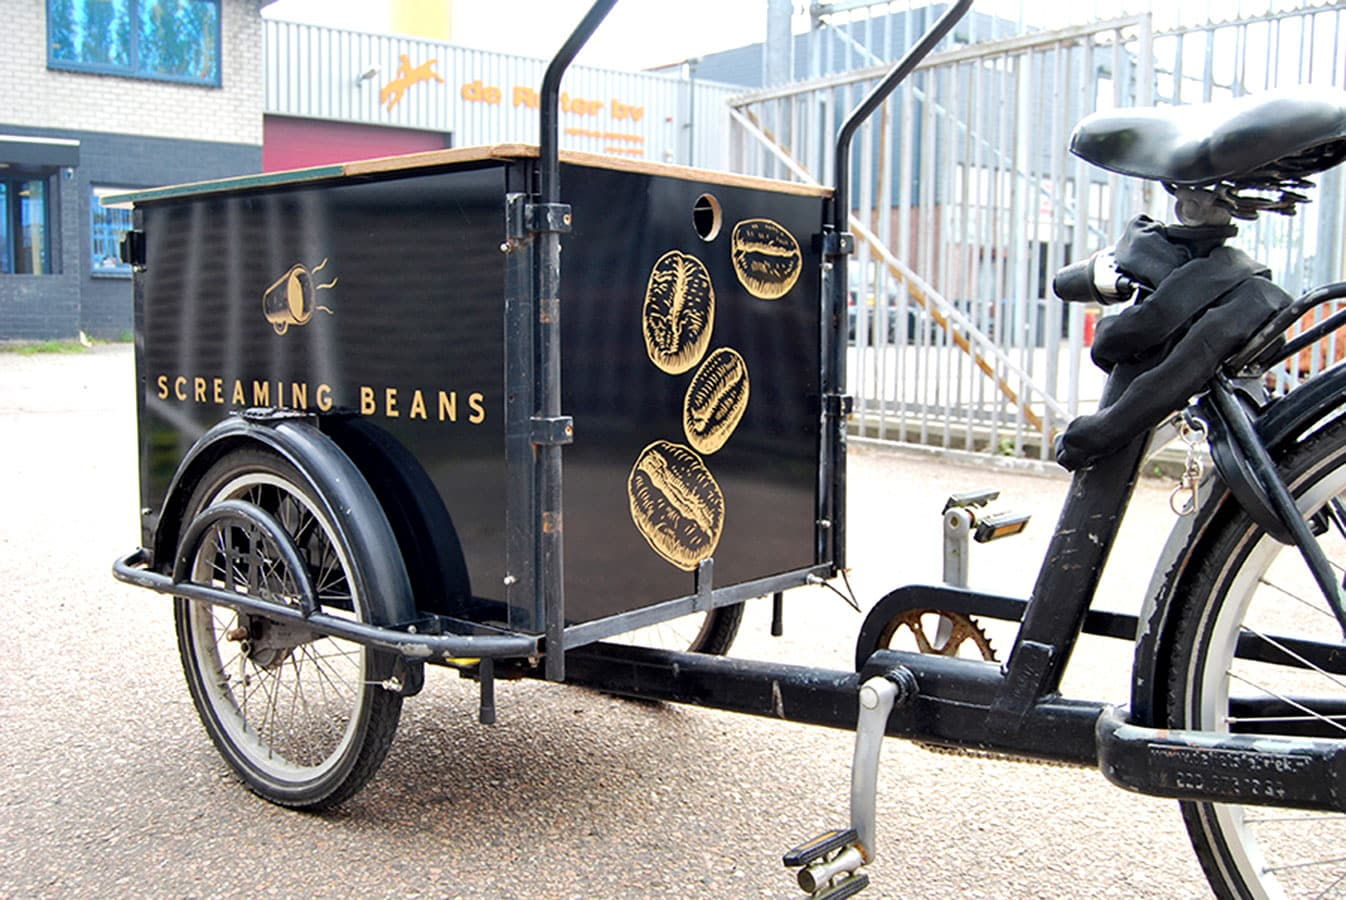 Bakfiets reclame